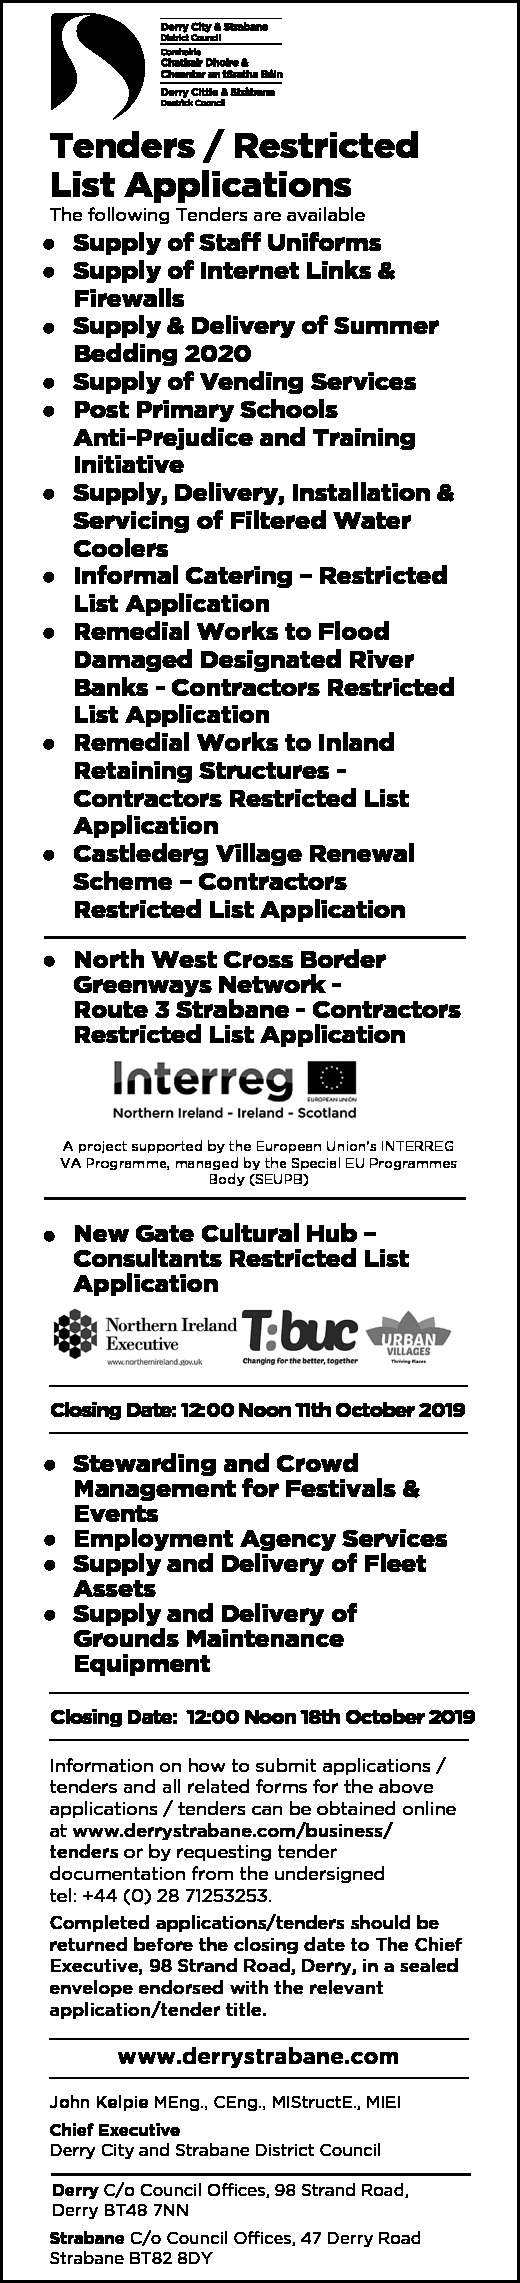 Derry City & Strabane District Council - Tenders/Restricted List Applications - Contracts & Tenders in Northern Ireland